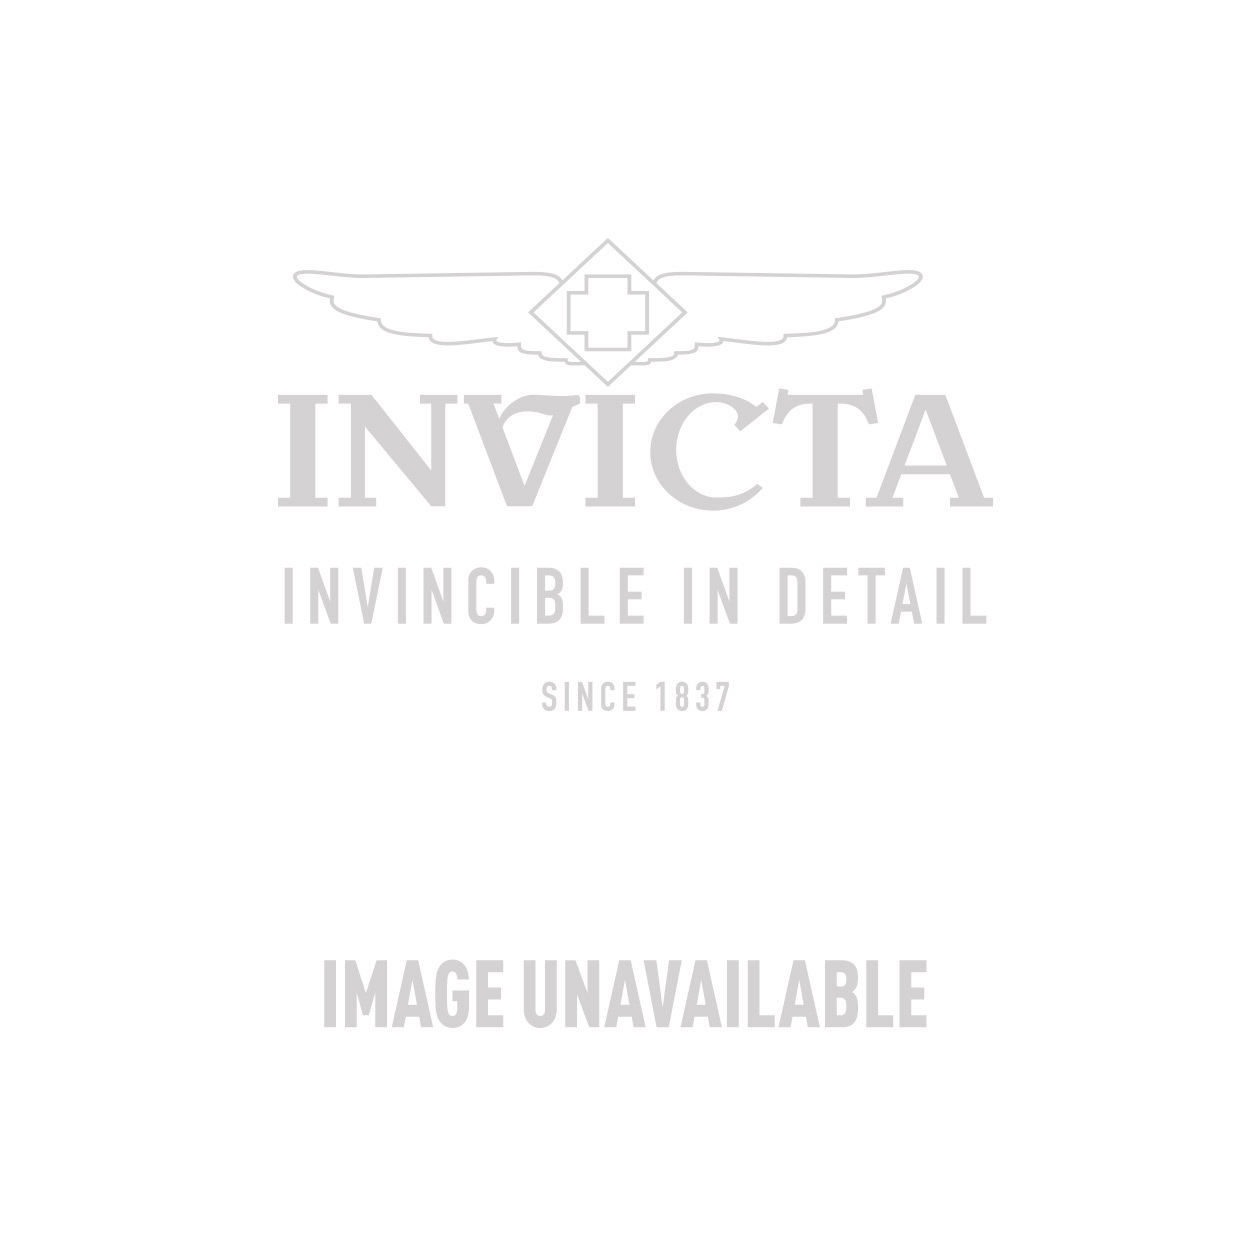 Invicta Angel Swiss Movement Quartz Watch - Rose Gold, Brown case with Rose Gold, Brown tone Stainless Steel band - Model 14727